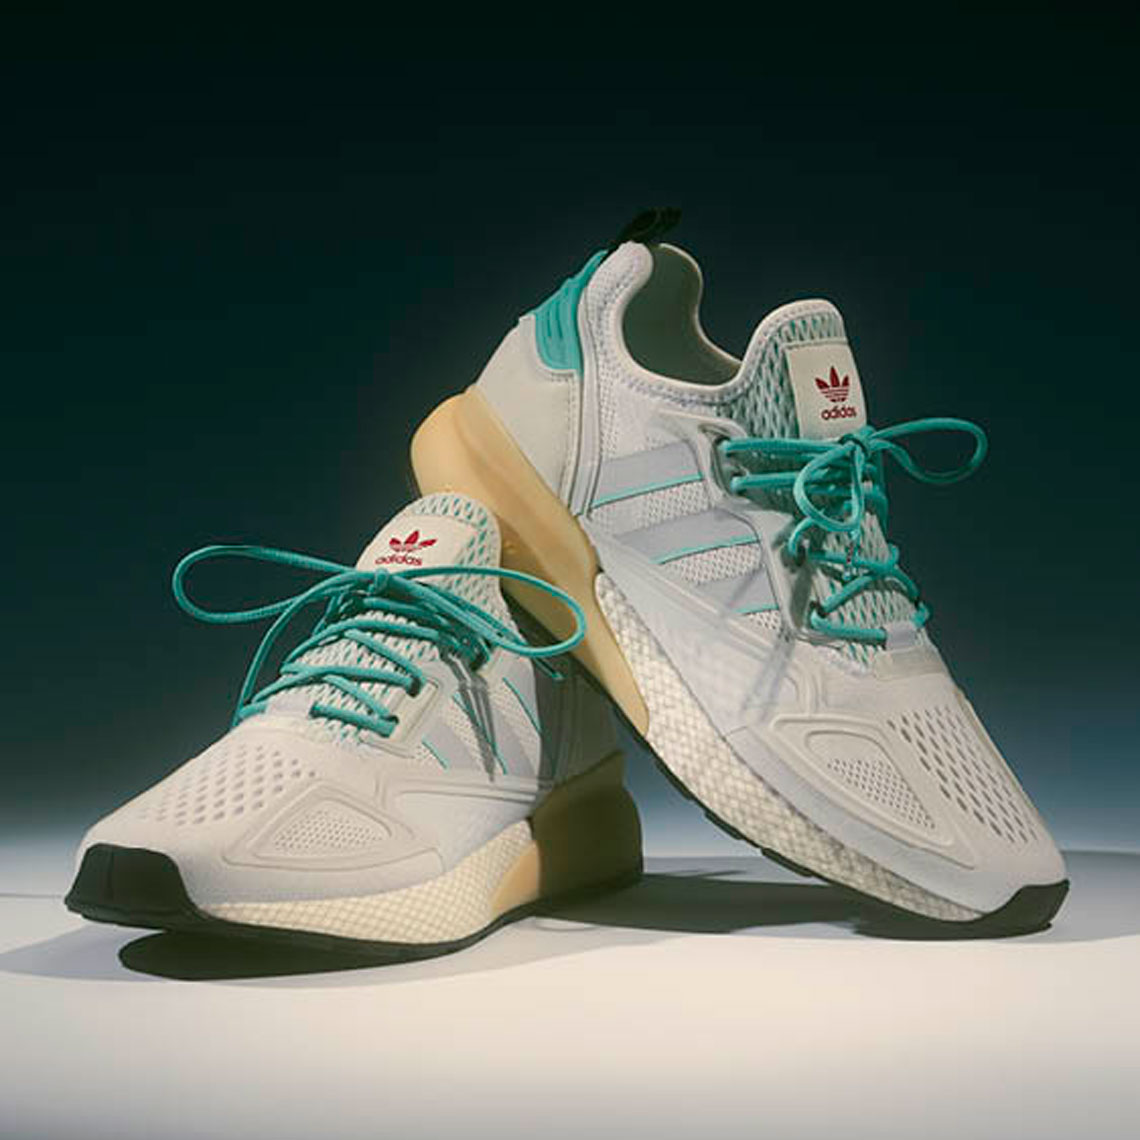 cuenco Habitar agrio  adidas ZX 2K Boost FX4172 Release Date | SneakerNews.com